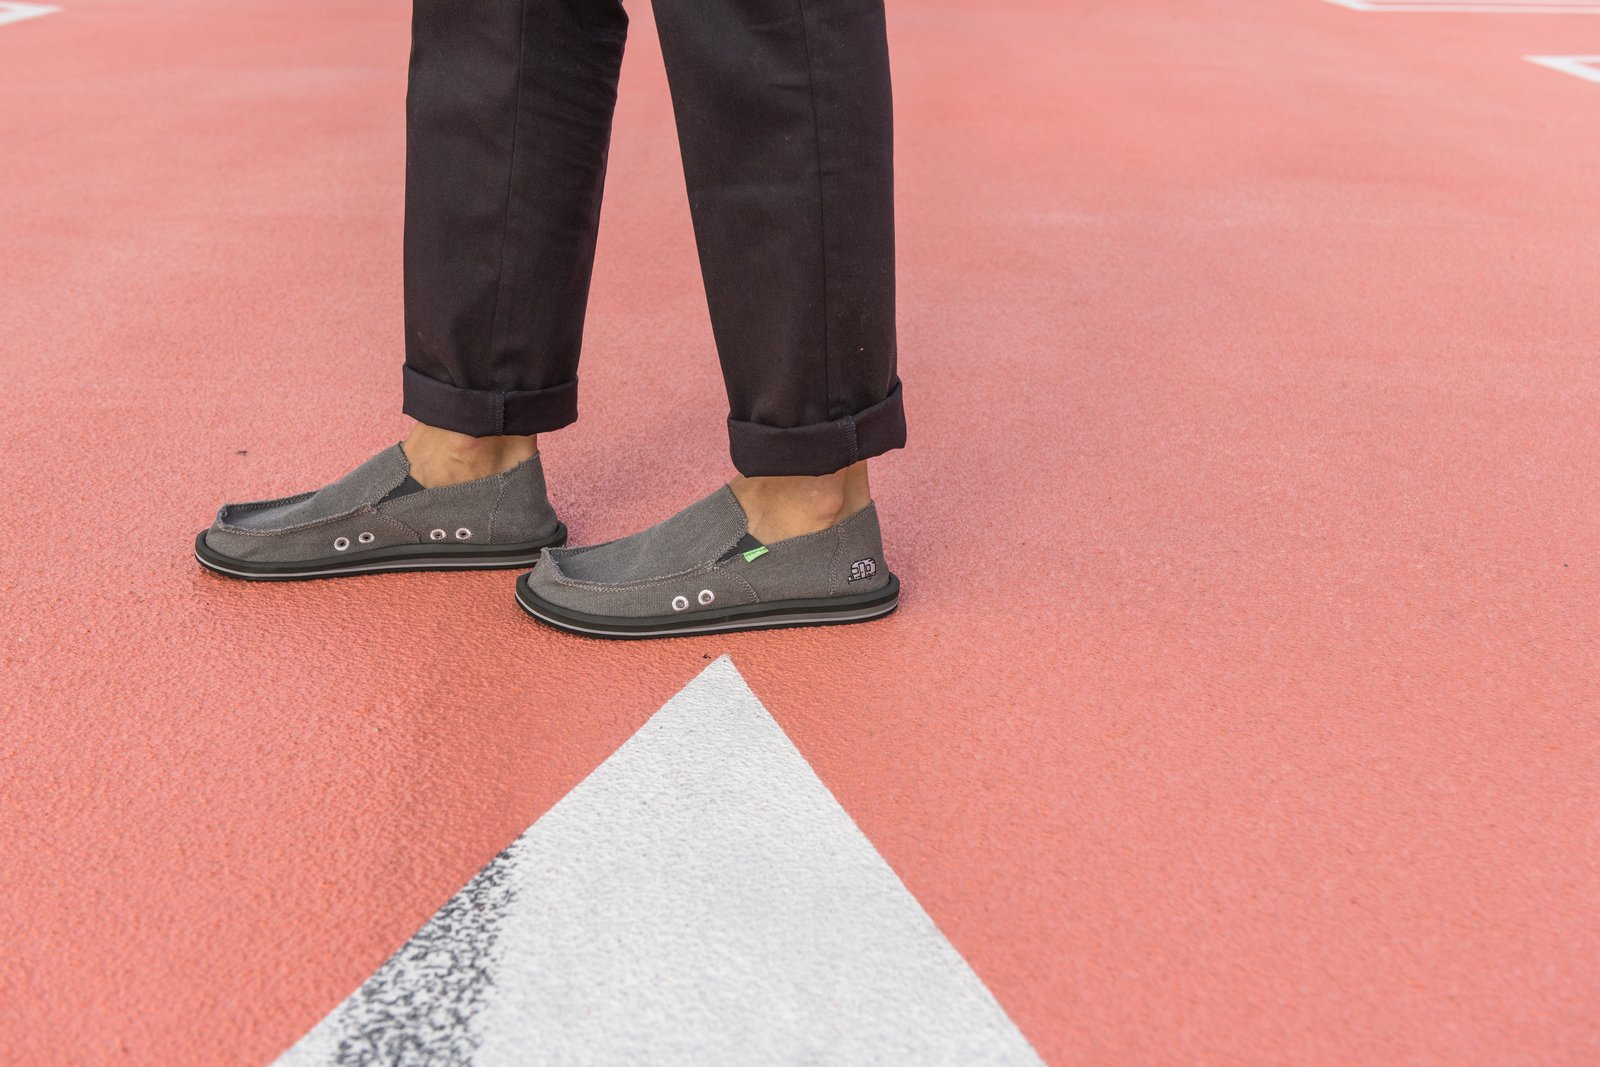 Photo 9 of 9 in Airstream and Sanuk Launch a New Line of Adventure-Ready Shoes